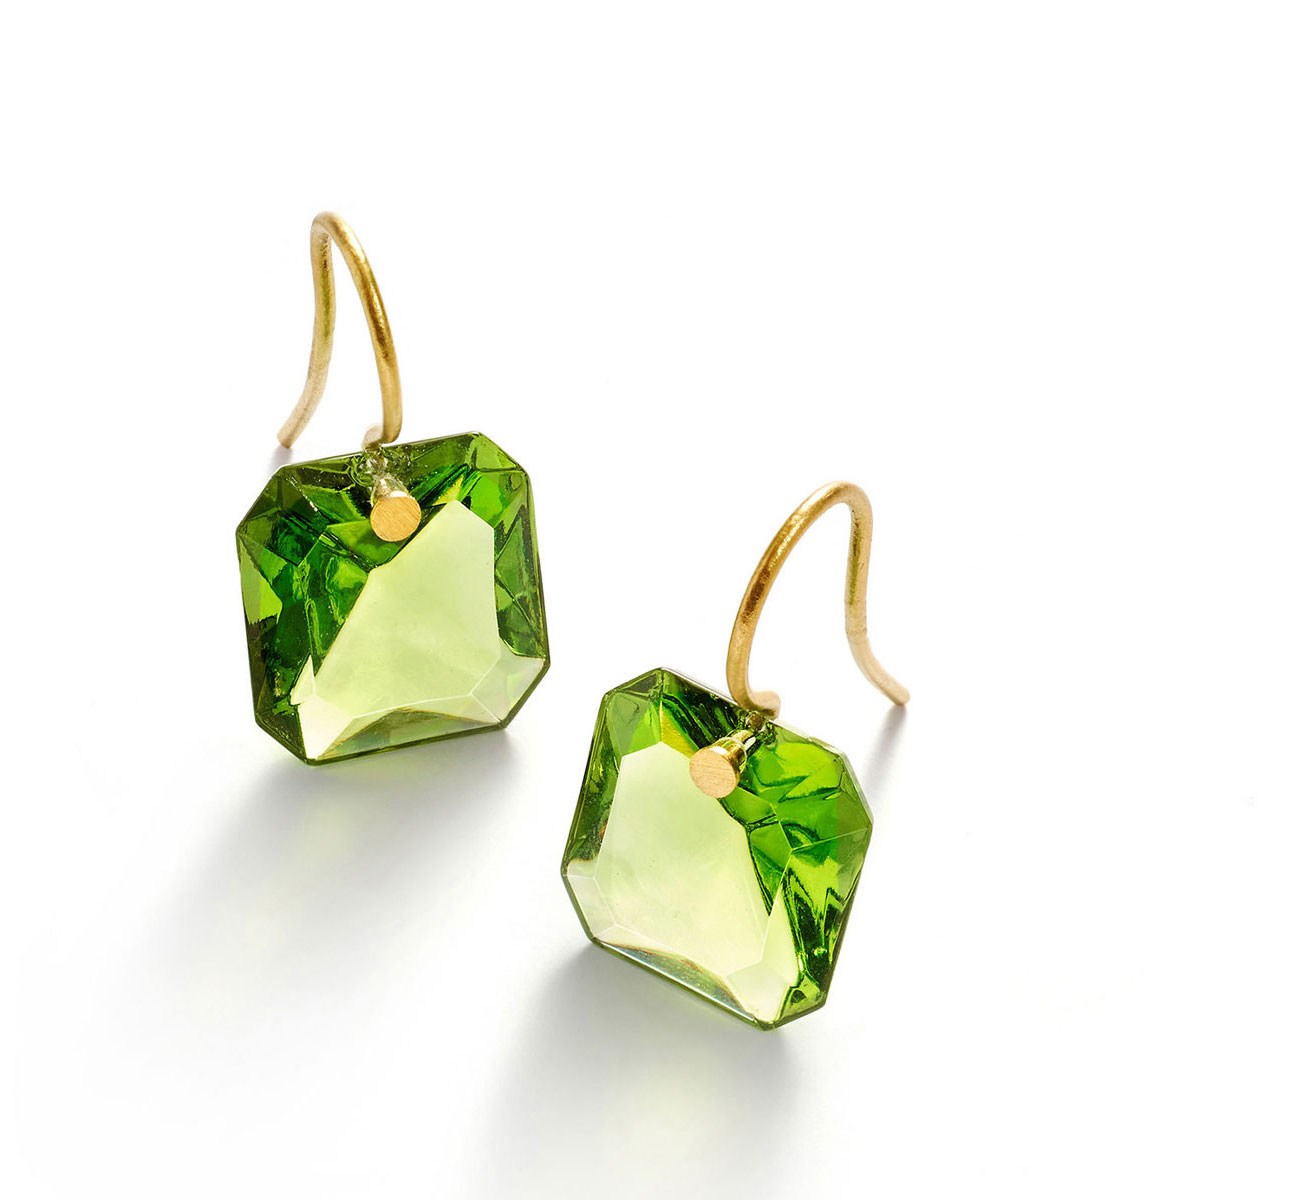 Baccarat Crystal Marie-Helene De Taillac Earrings Small Wire Vermeil Gold Green